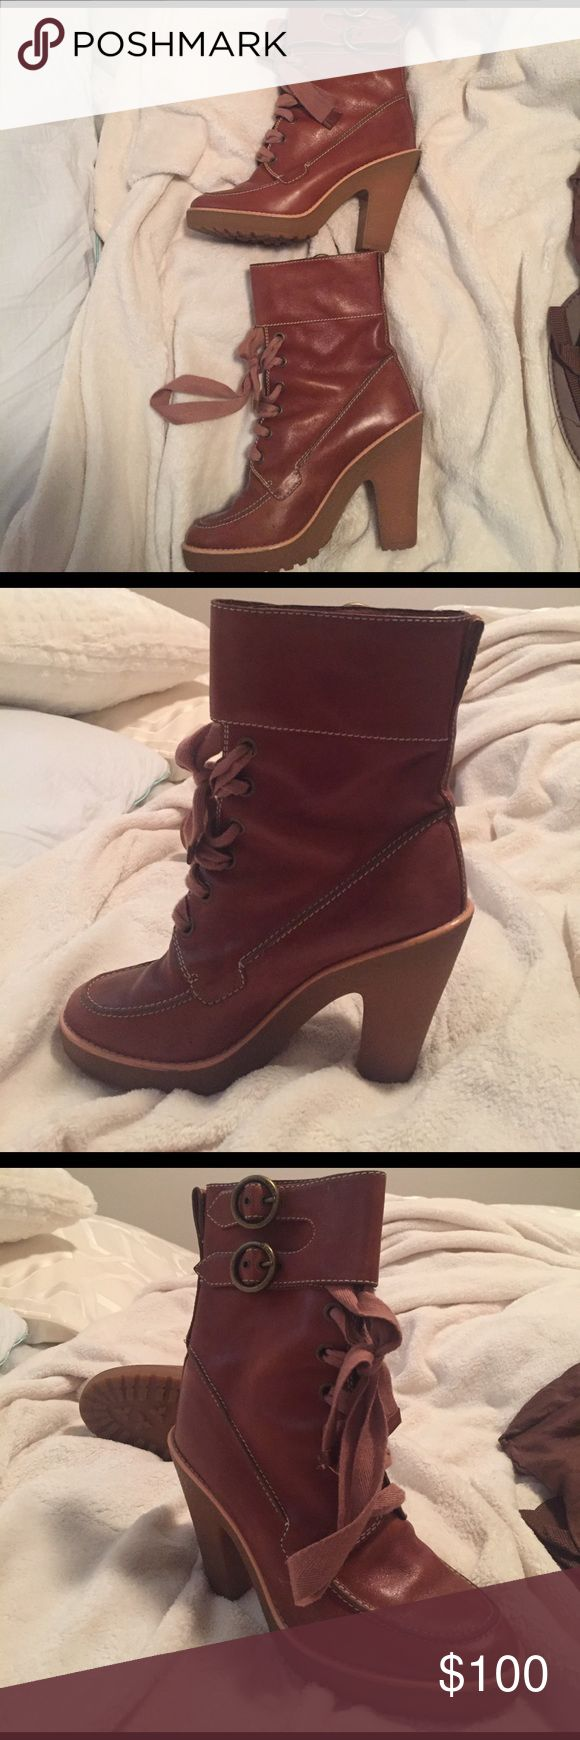 Marc Jacobs lace up heeled boots Tan colored combat boot style- have a good sized heel on them. Barely worn! Marc Jacobs Shoes Combat & Moto Boots